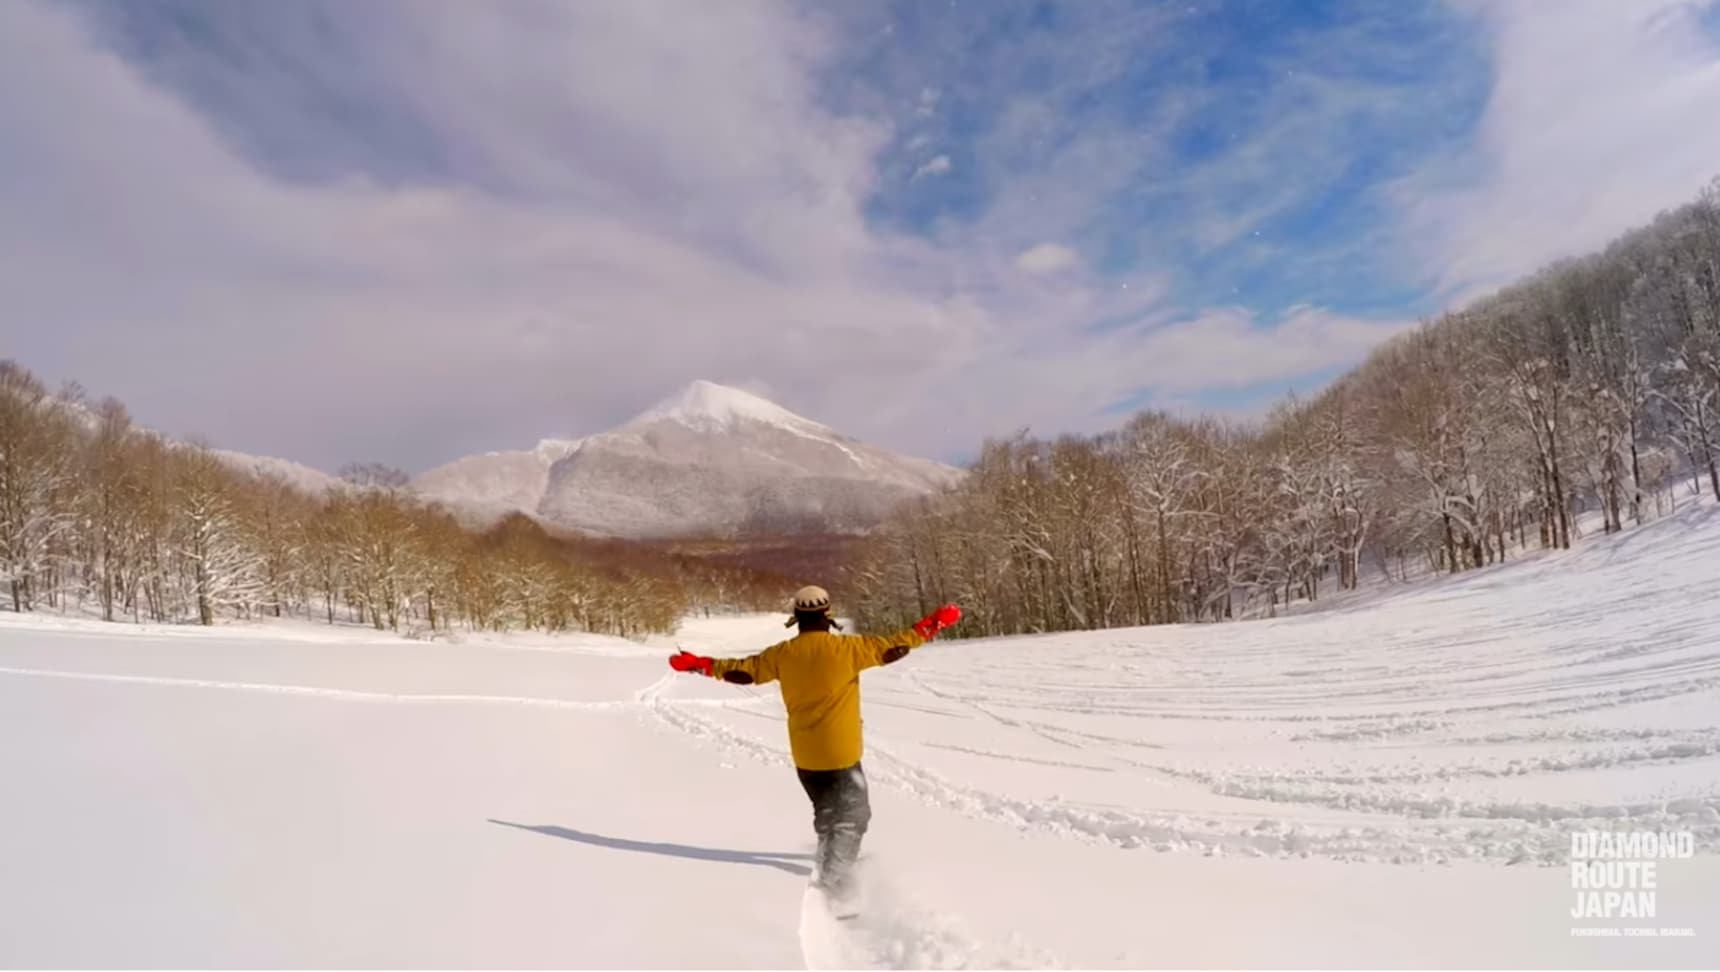 East Japan Shines in 5 Videos of Wintry Wonder